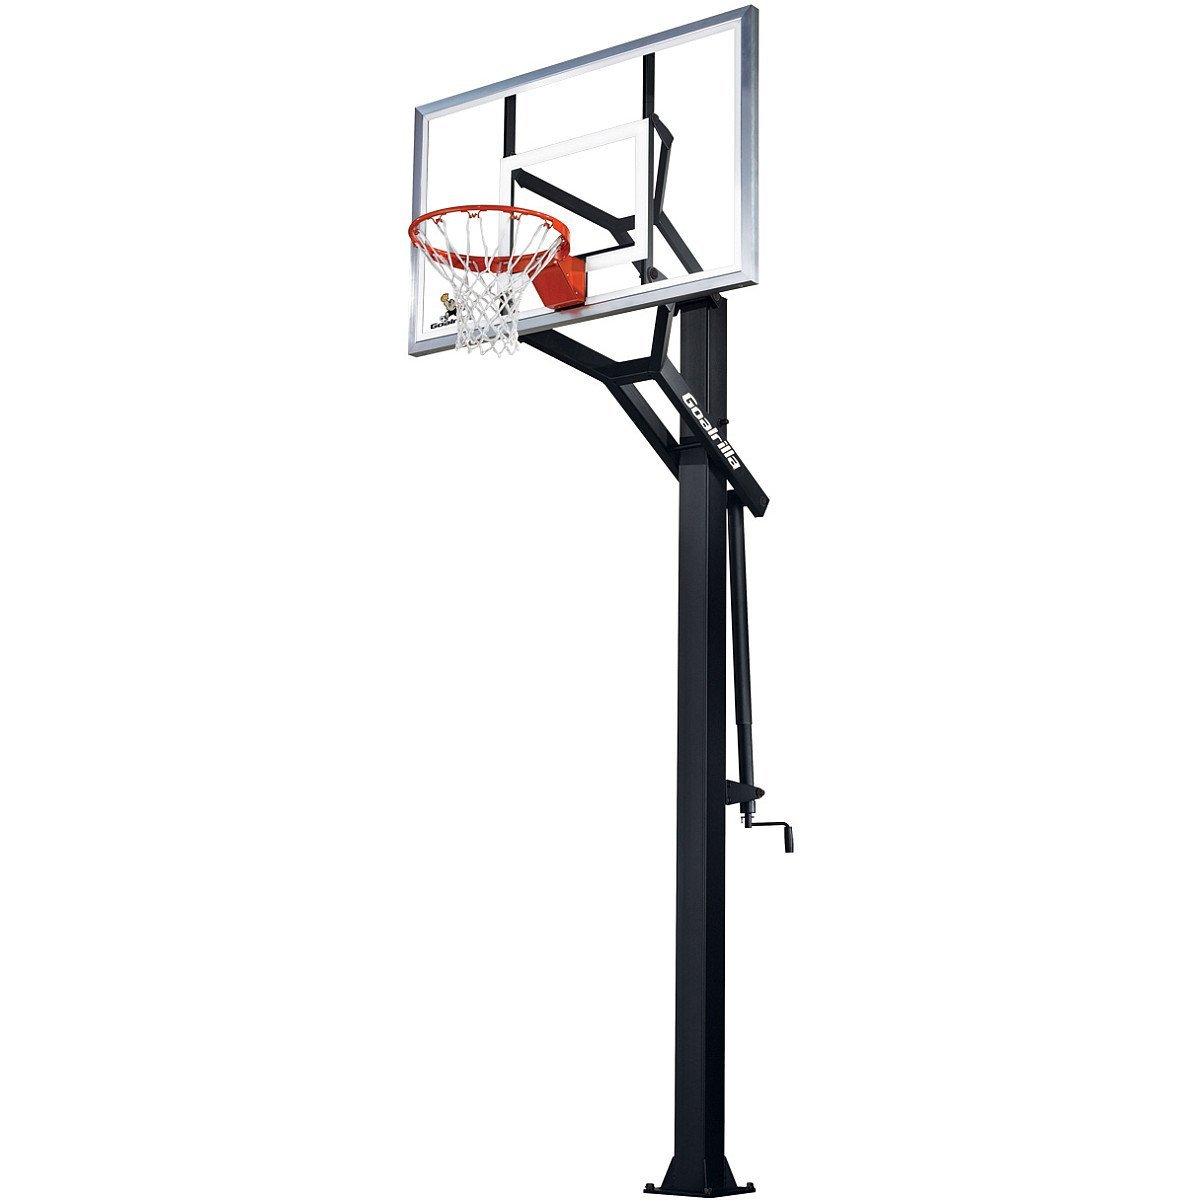 Amazon.com : Goalrilla GLR GS 54 Basketball System : In Ground ...